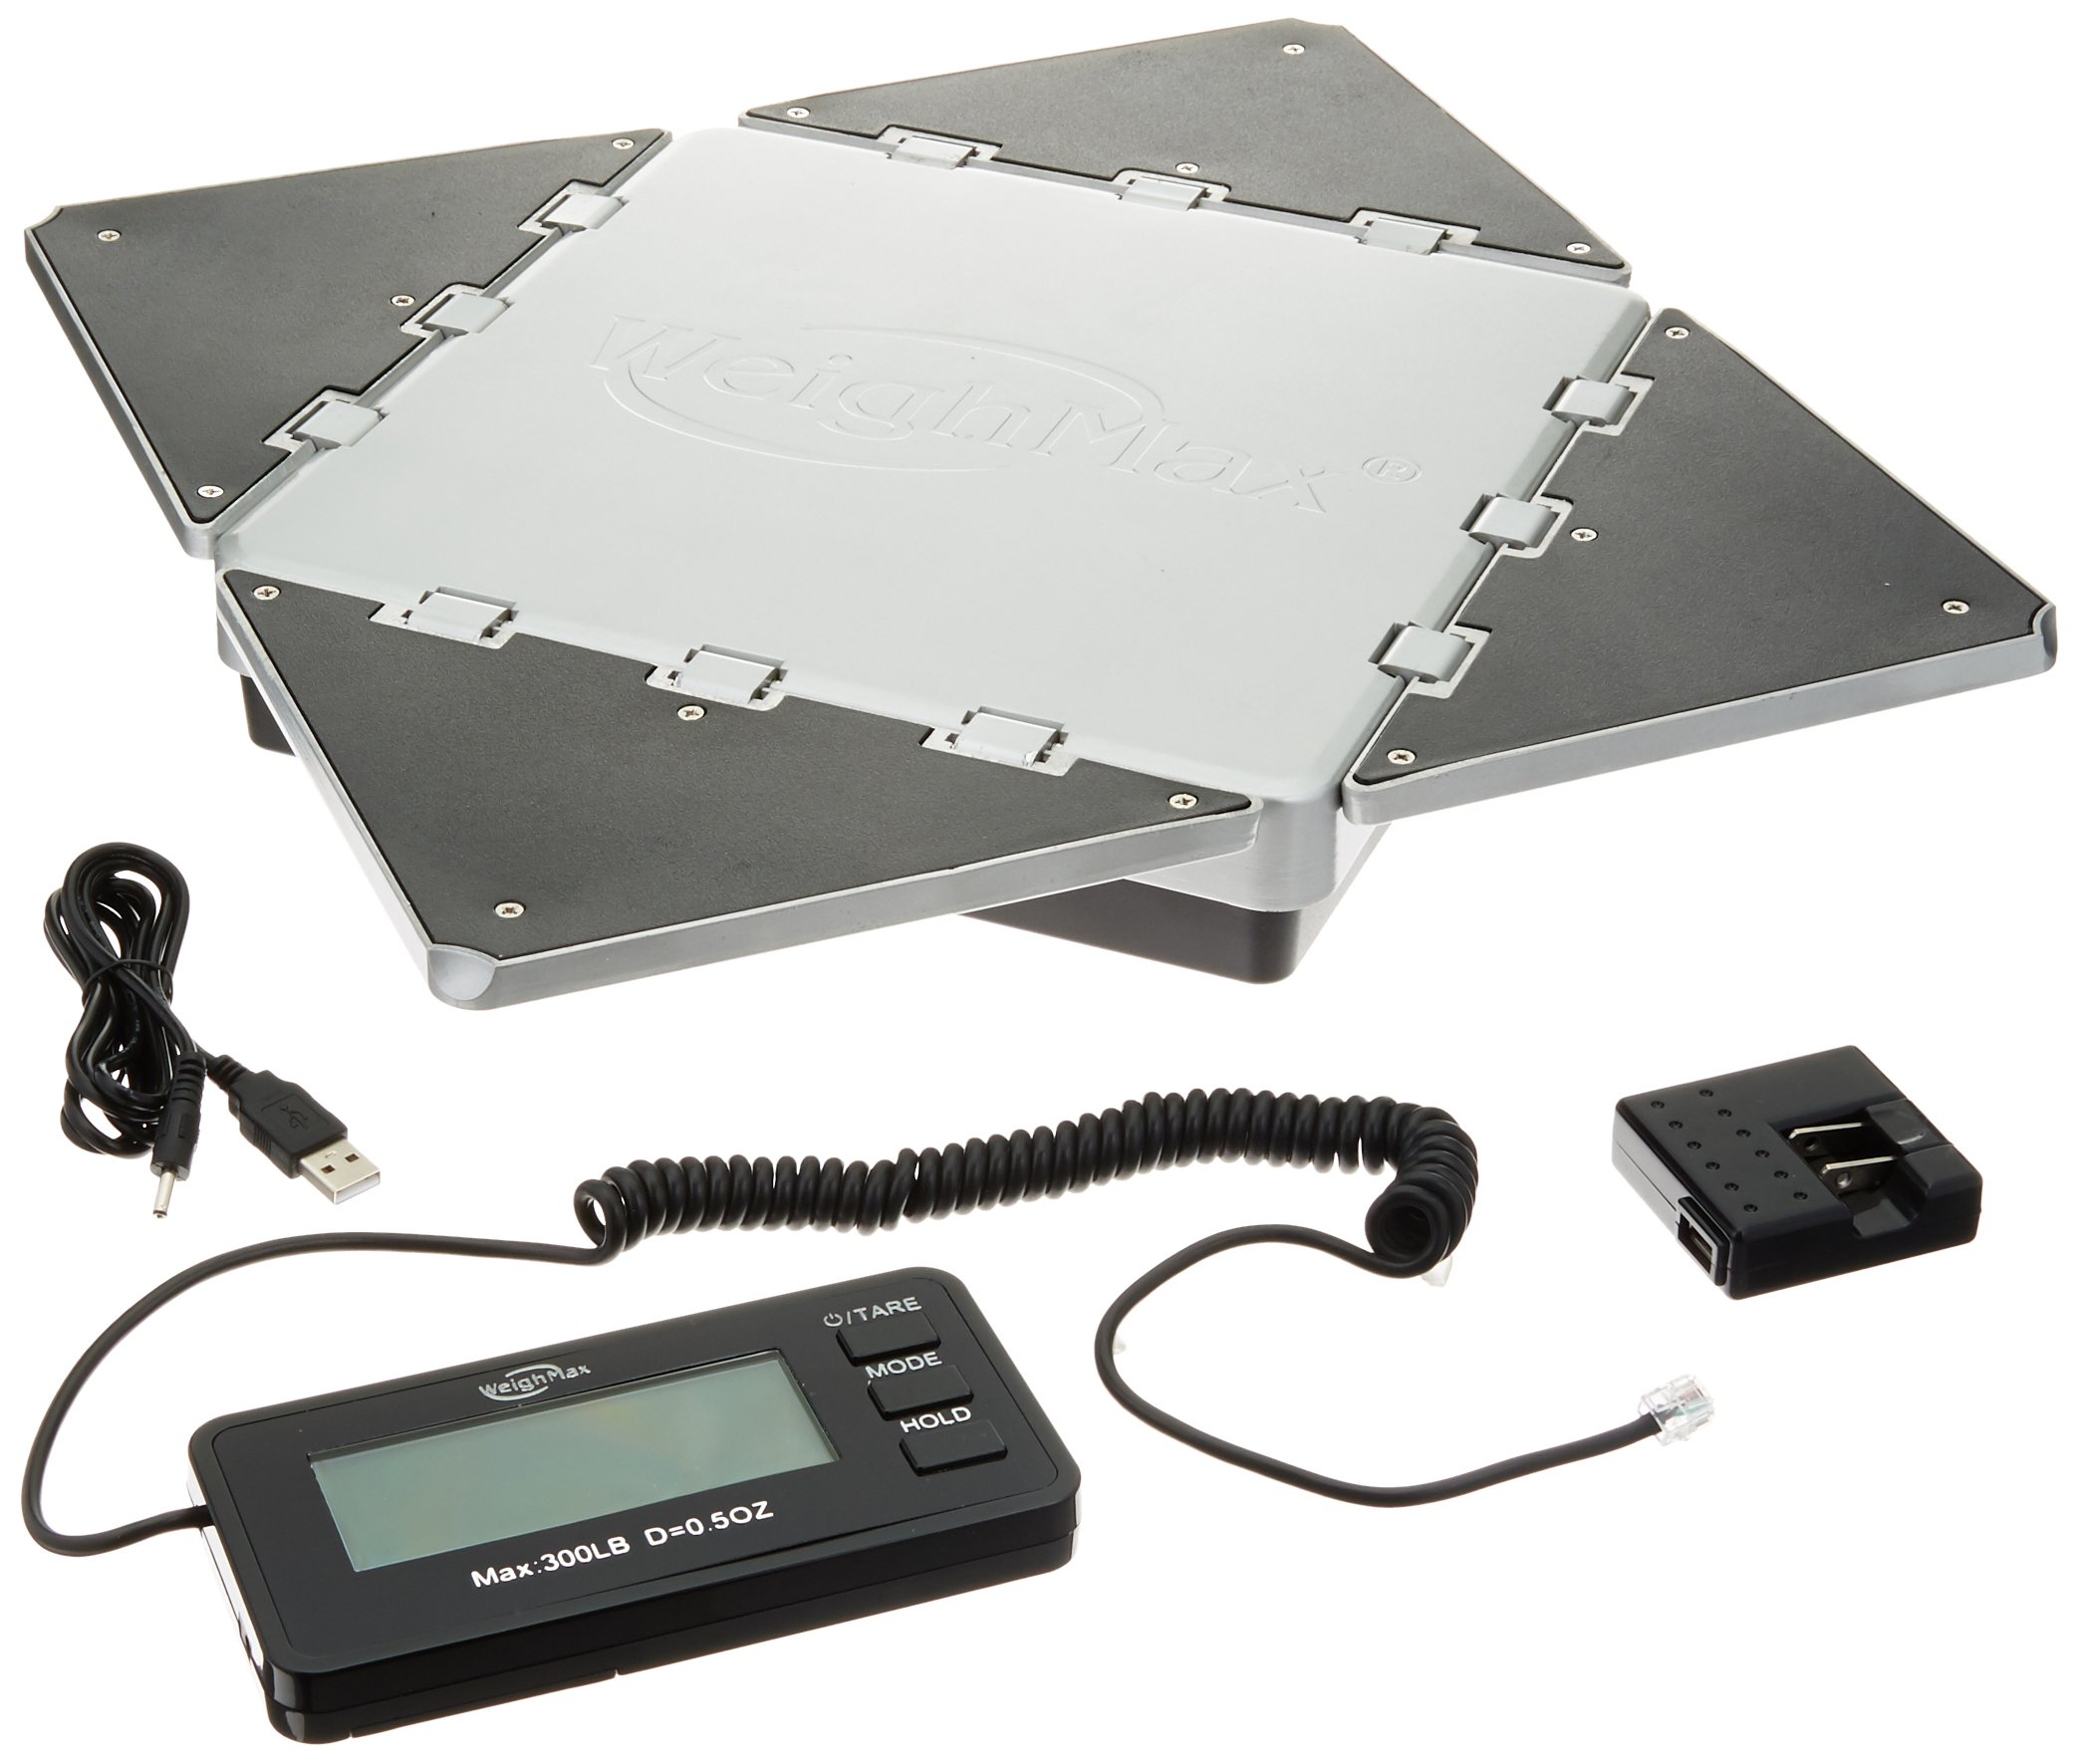 No1. Best Scale-Weighmax Transformer Digital Metal-Built shipping postal scale, 300lbs by 0.02lb